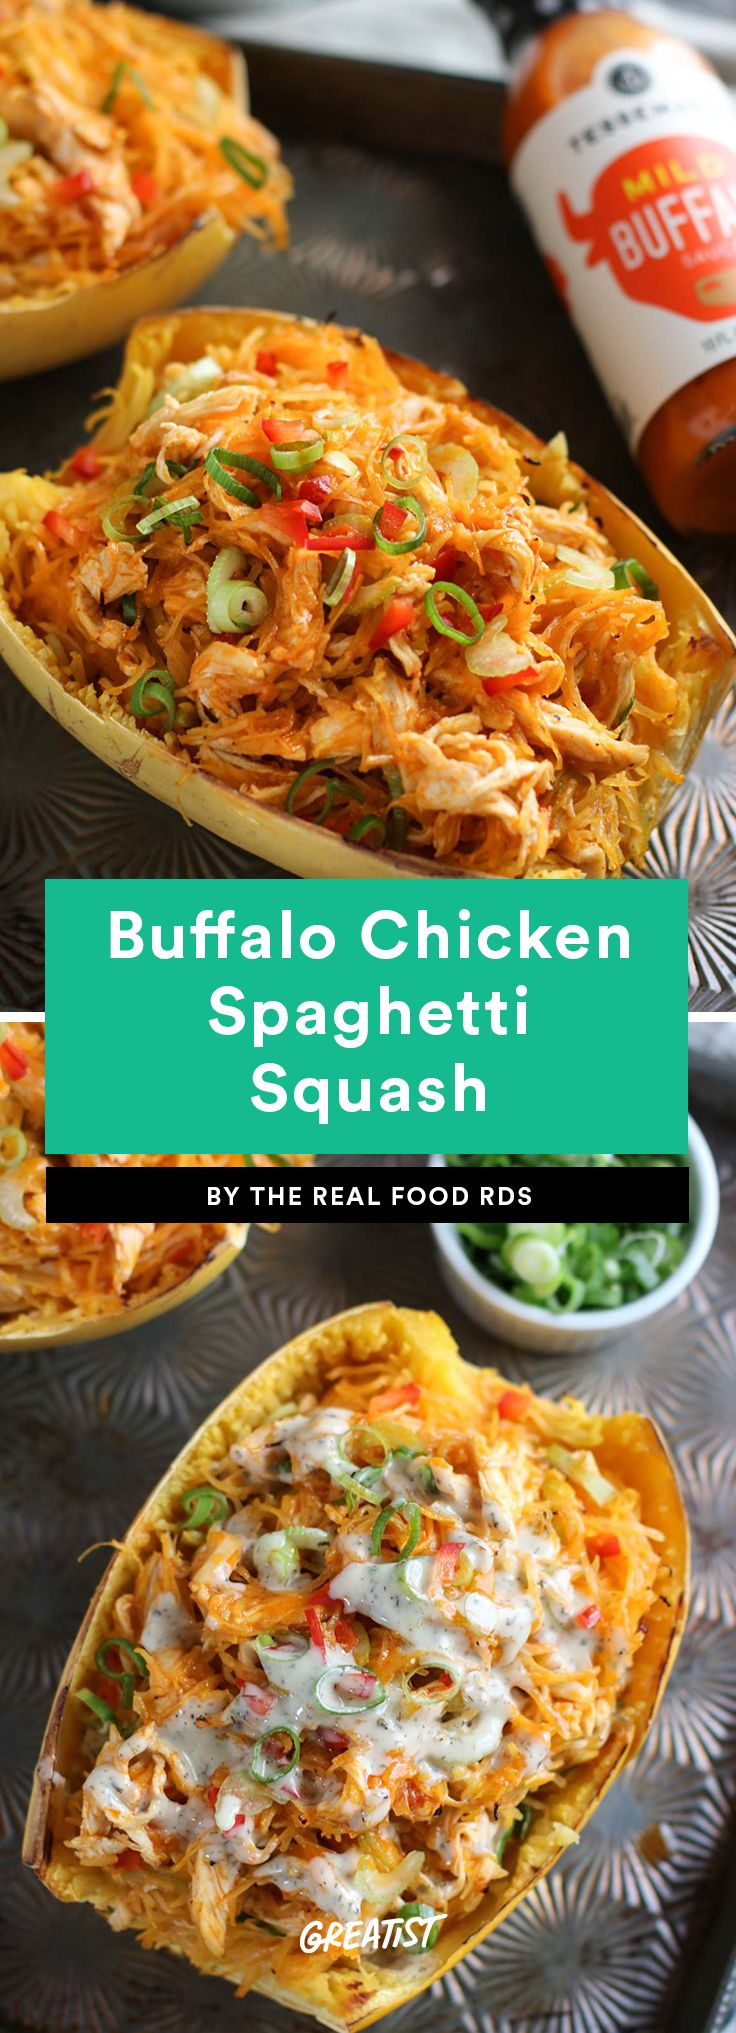 1. Buffalo Chicken Spaghetti Squash #greatist https://greatist.com/eat/easy-whole30-recipes